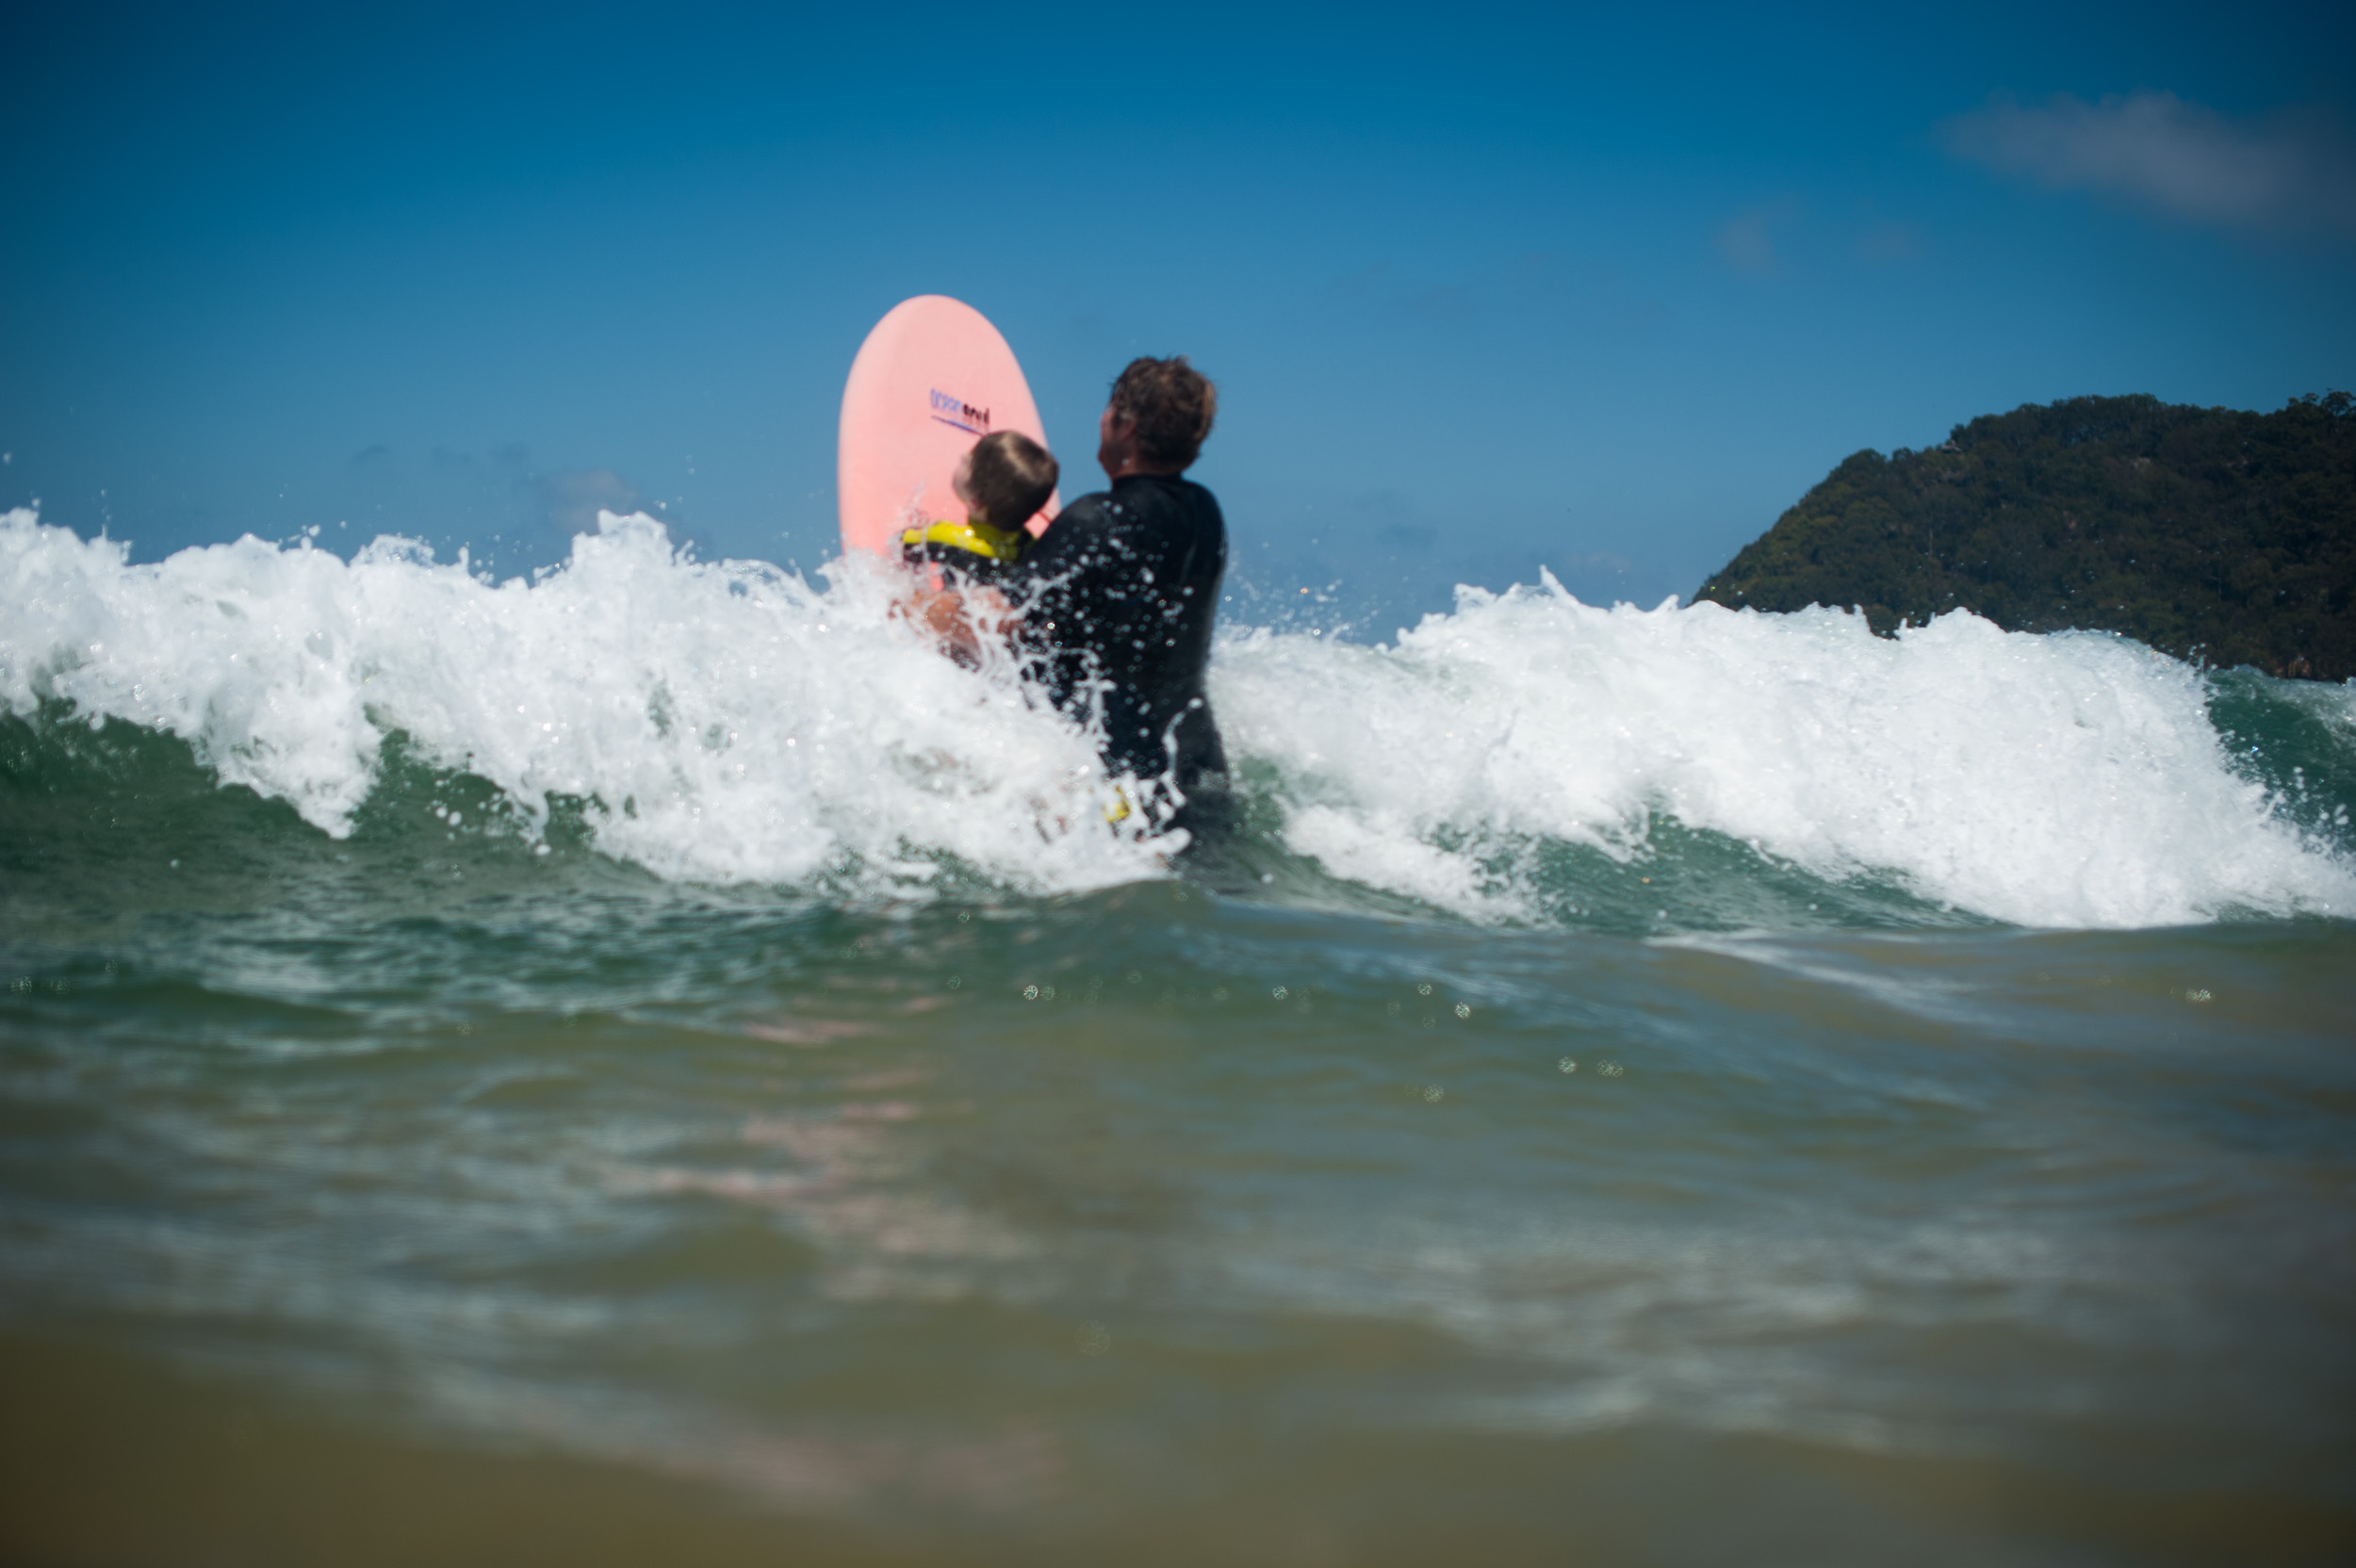 Dad pushing son over a wave at Umina Beach Central Coast NSW